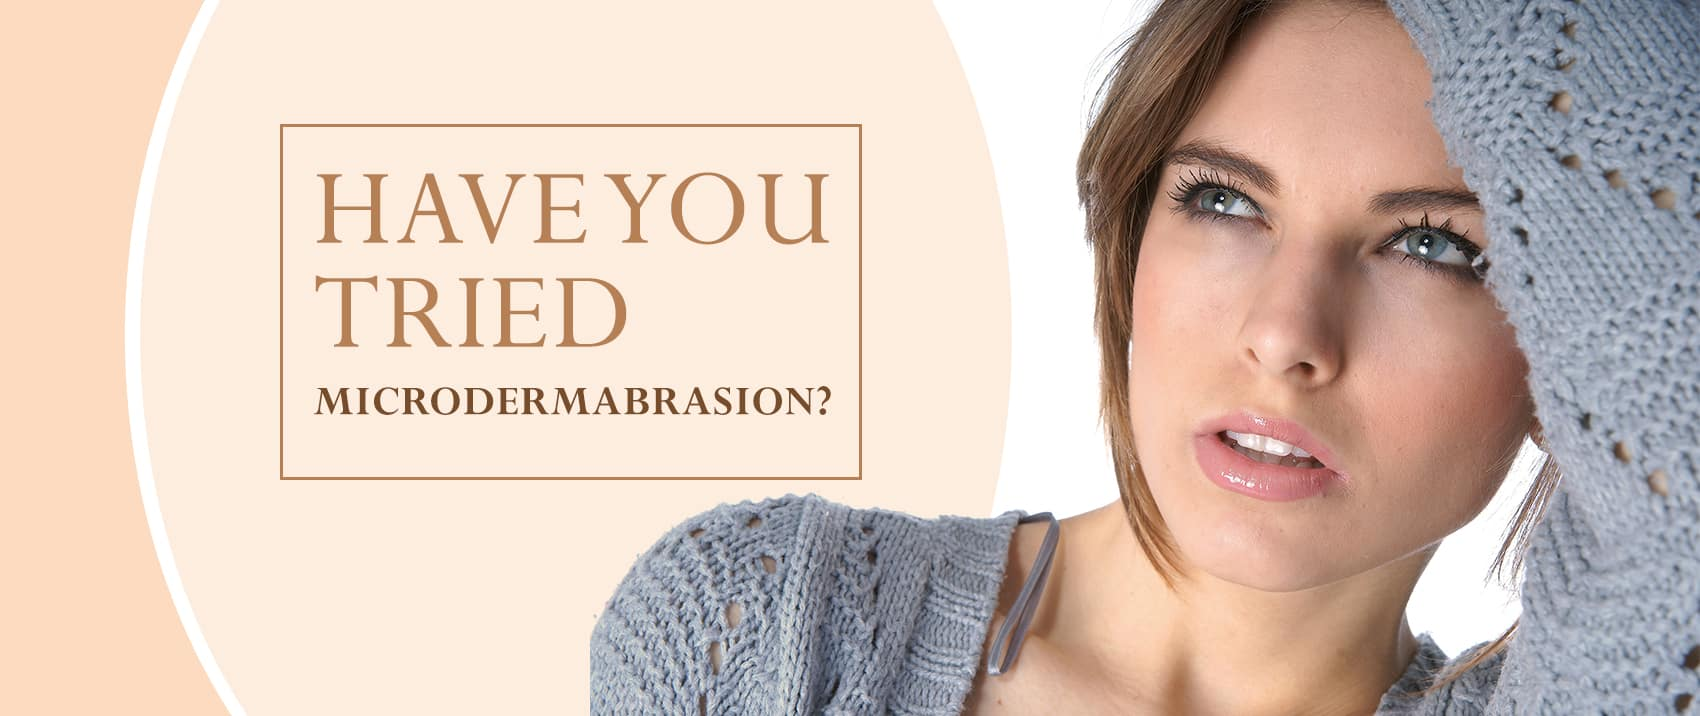 Have You Tried Microdermabrasion